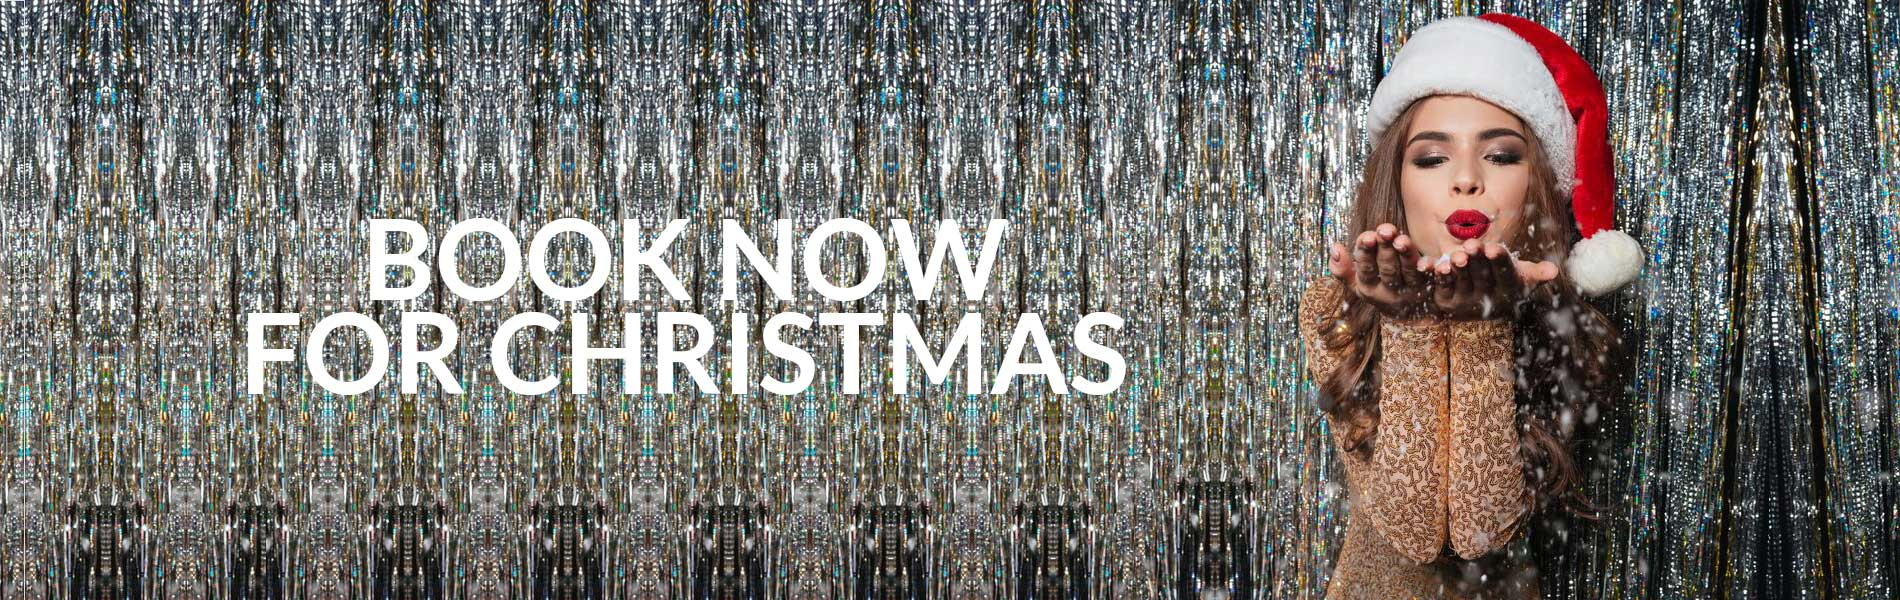 Book Now for Christmas banner